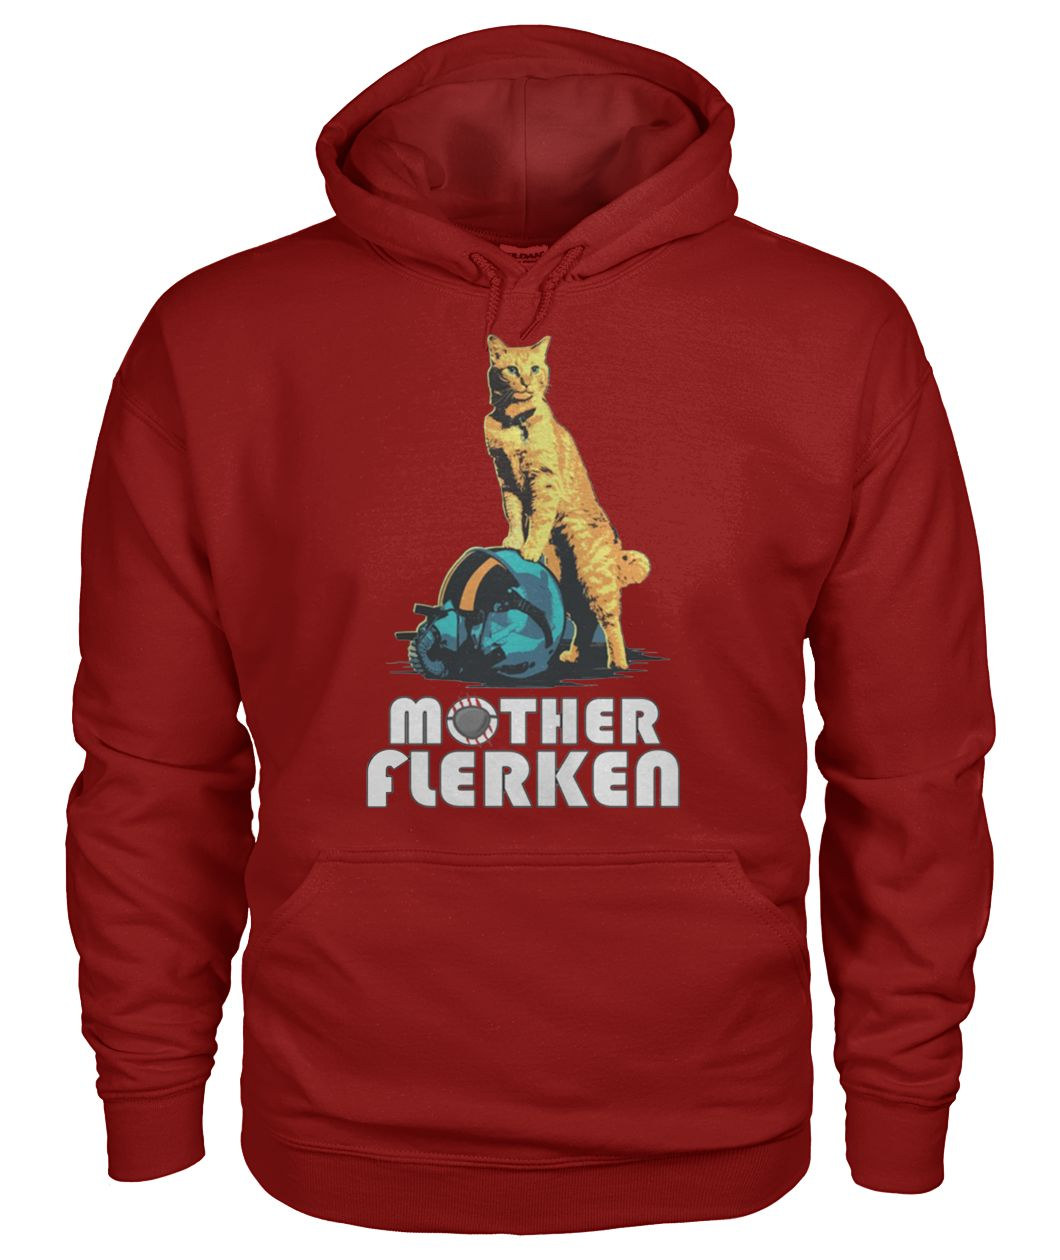 Captain marvel goose the cat mother flerken gildan hoodie